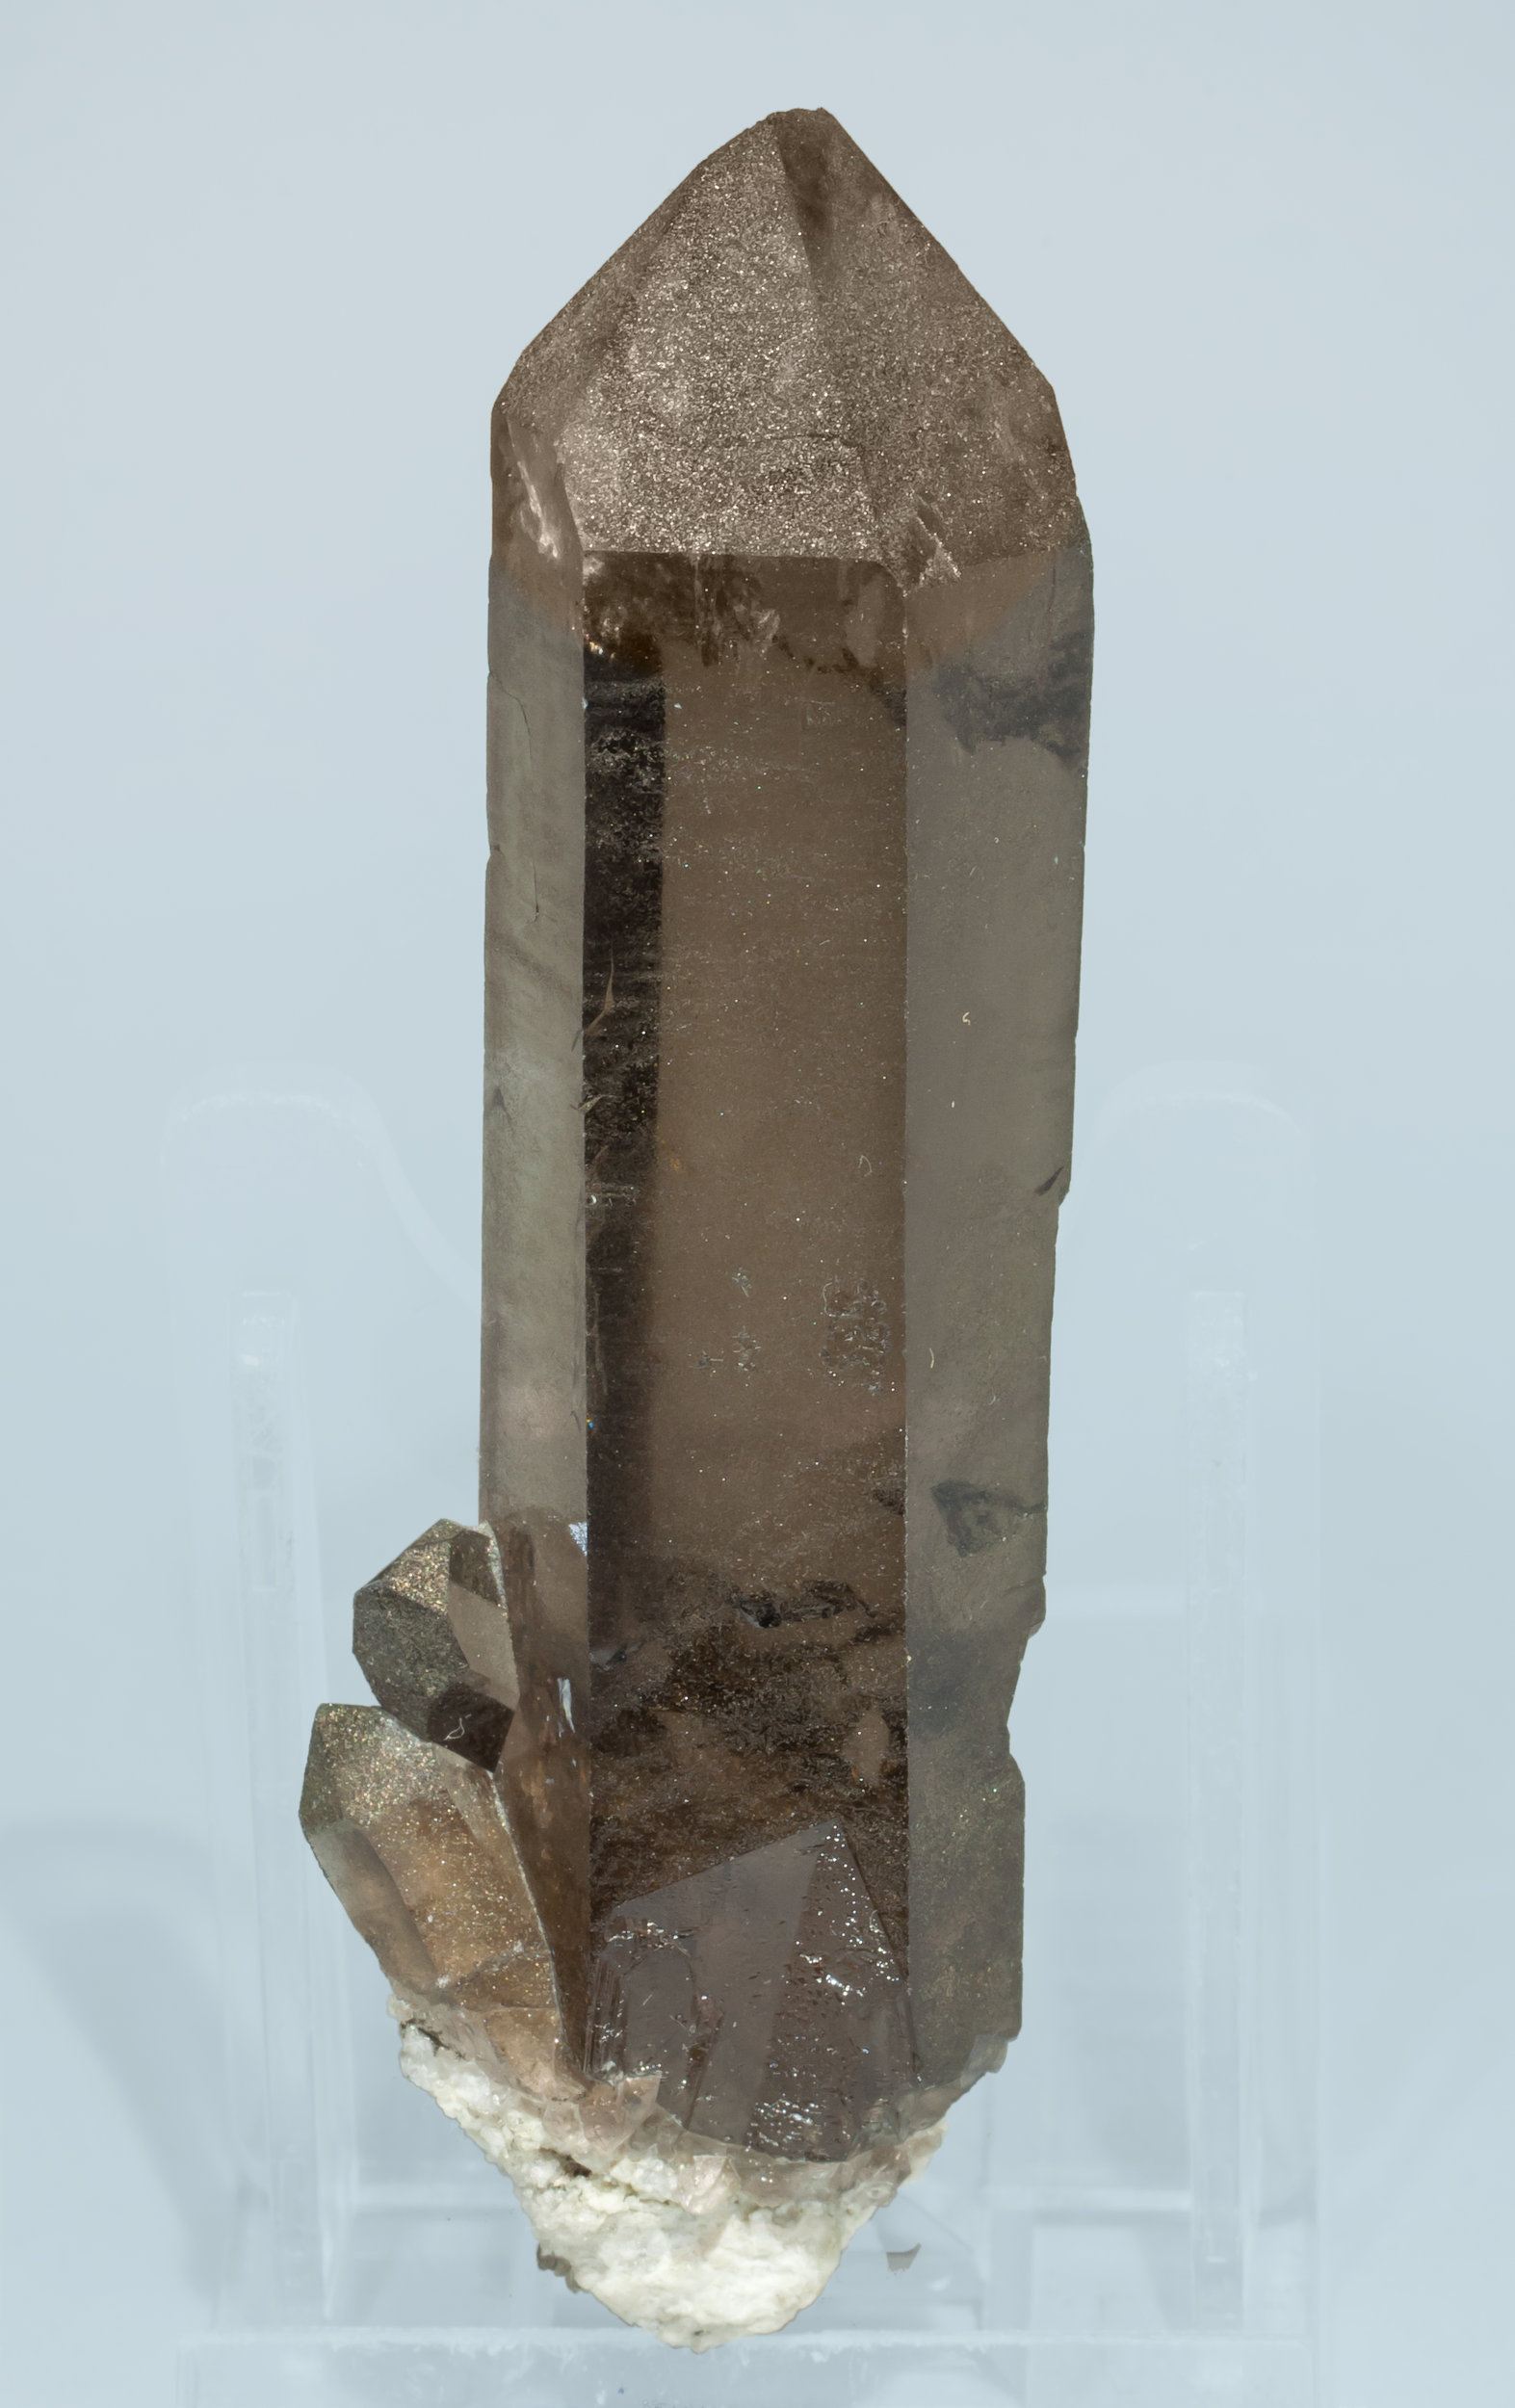 specimens/s_imagesAL3/Quartz-DX66AL3r.jpg